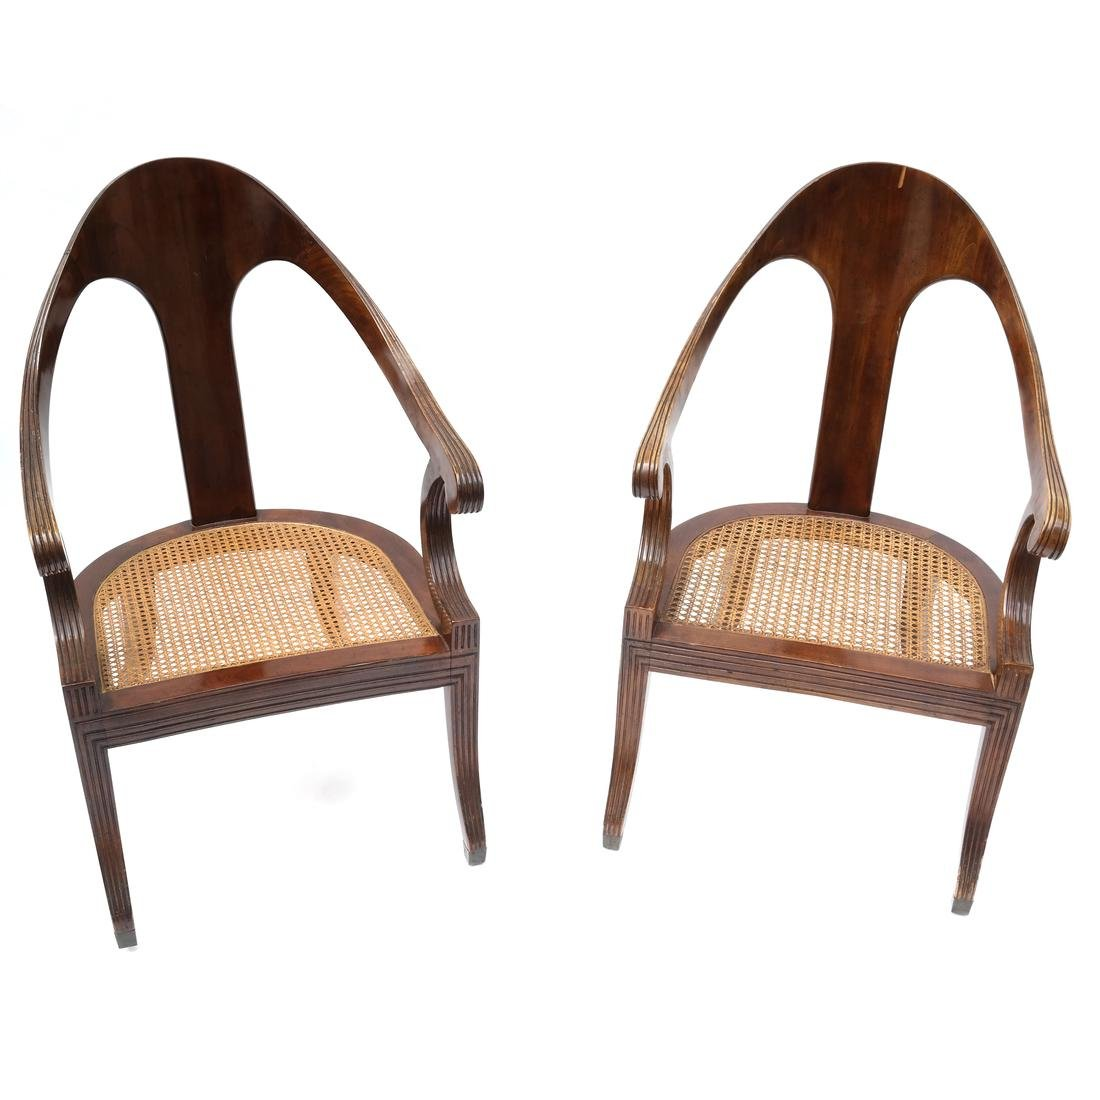 Regency-Style Scoop-Form Chairs.